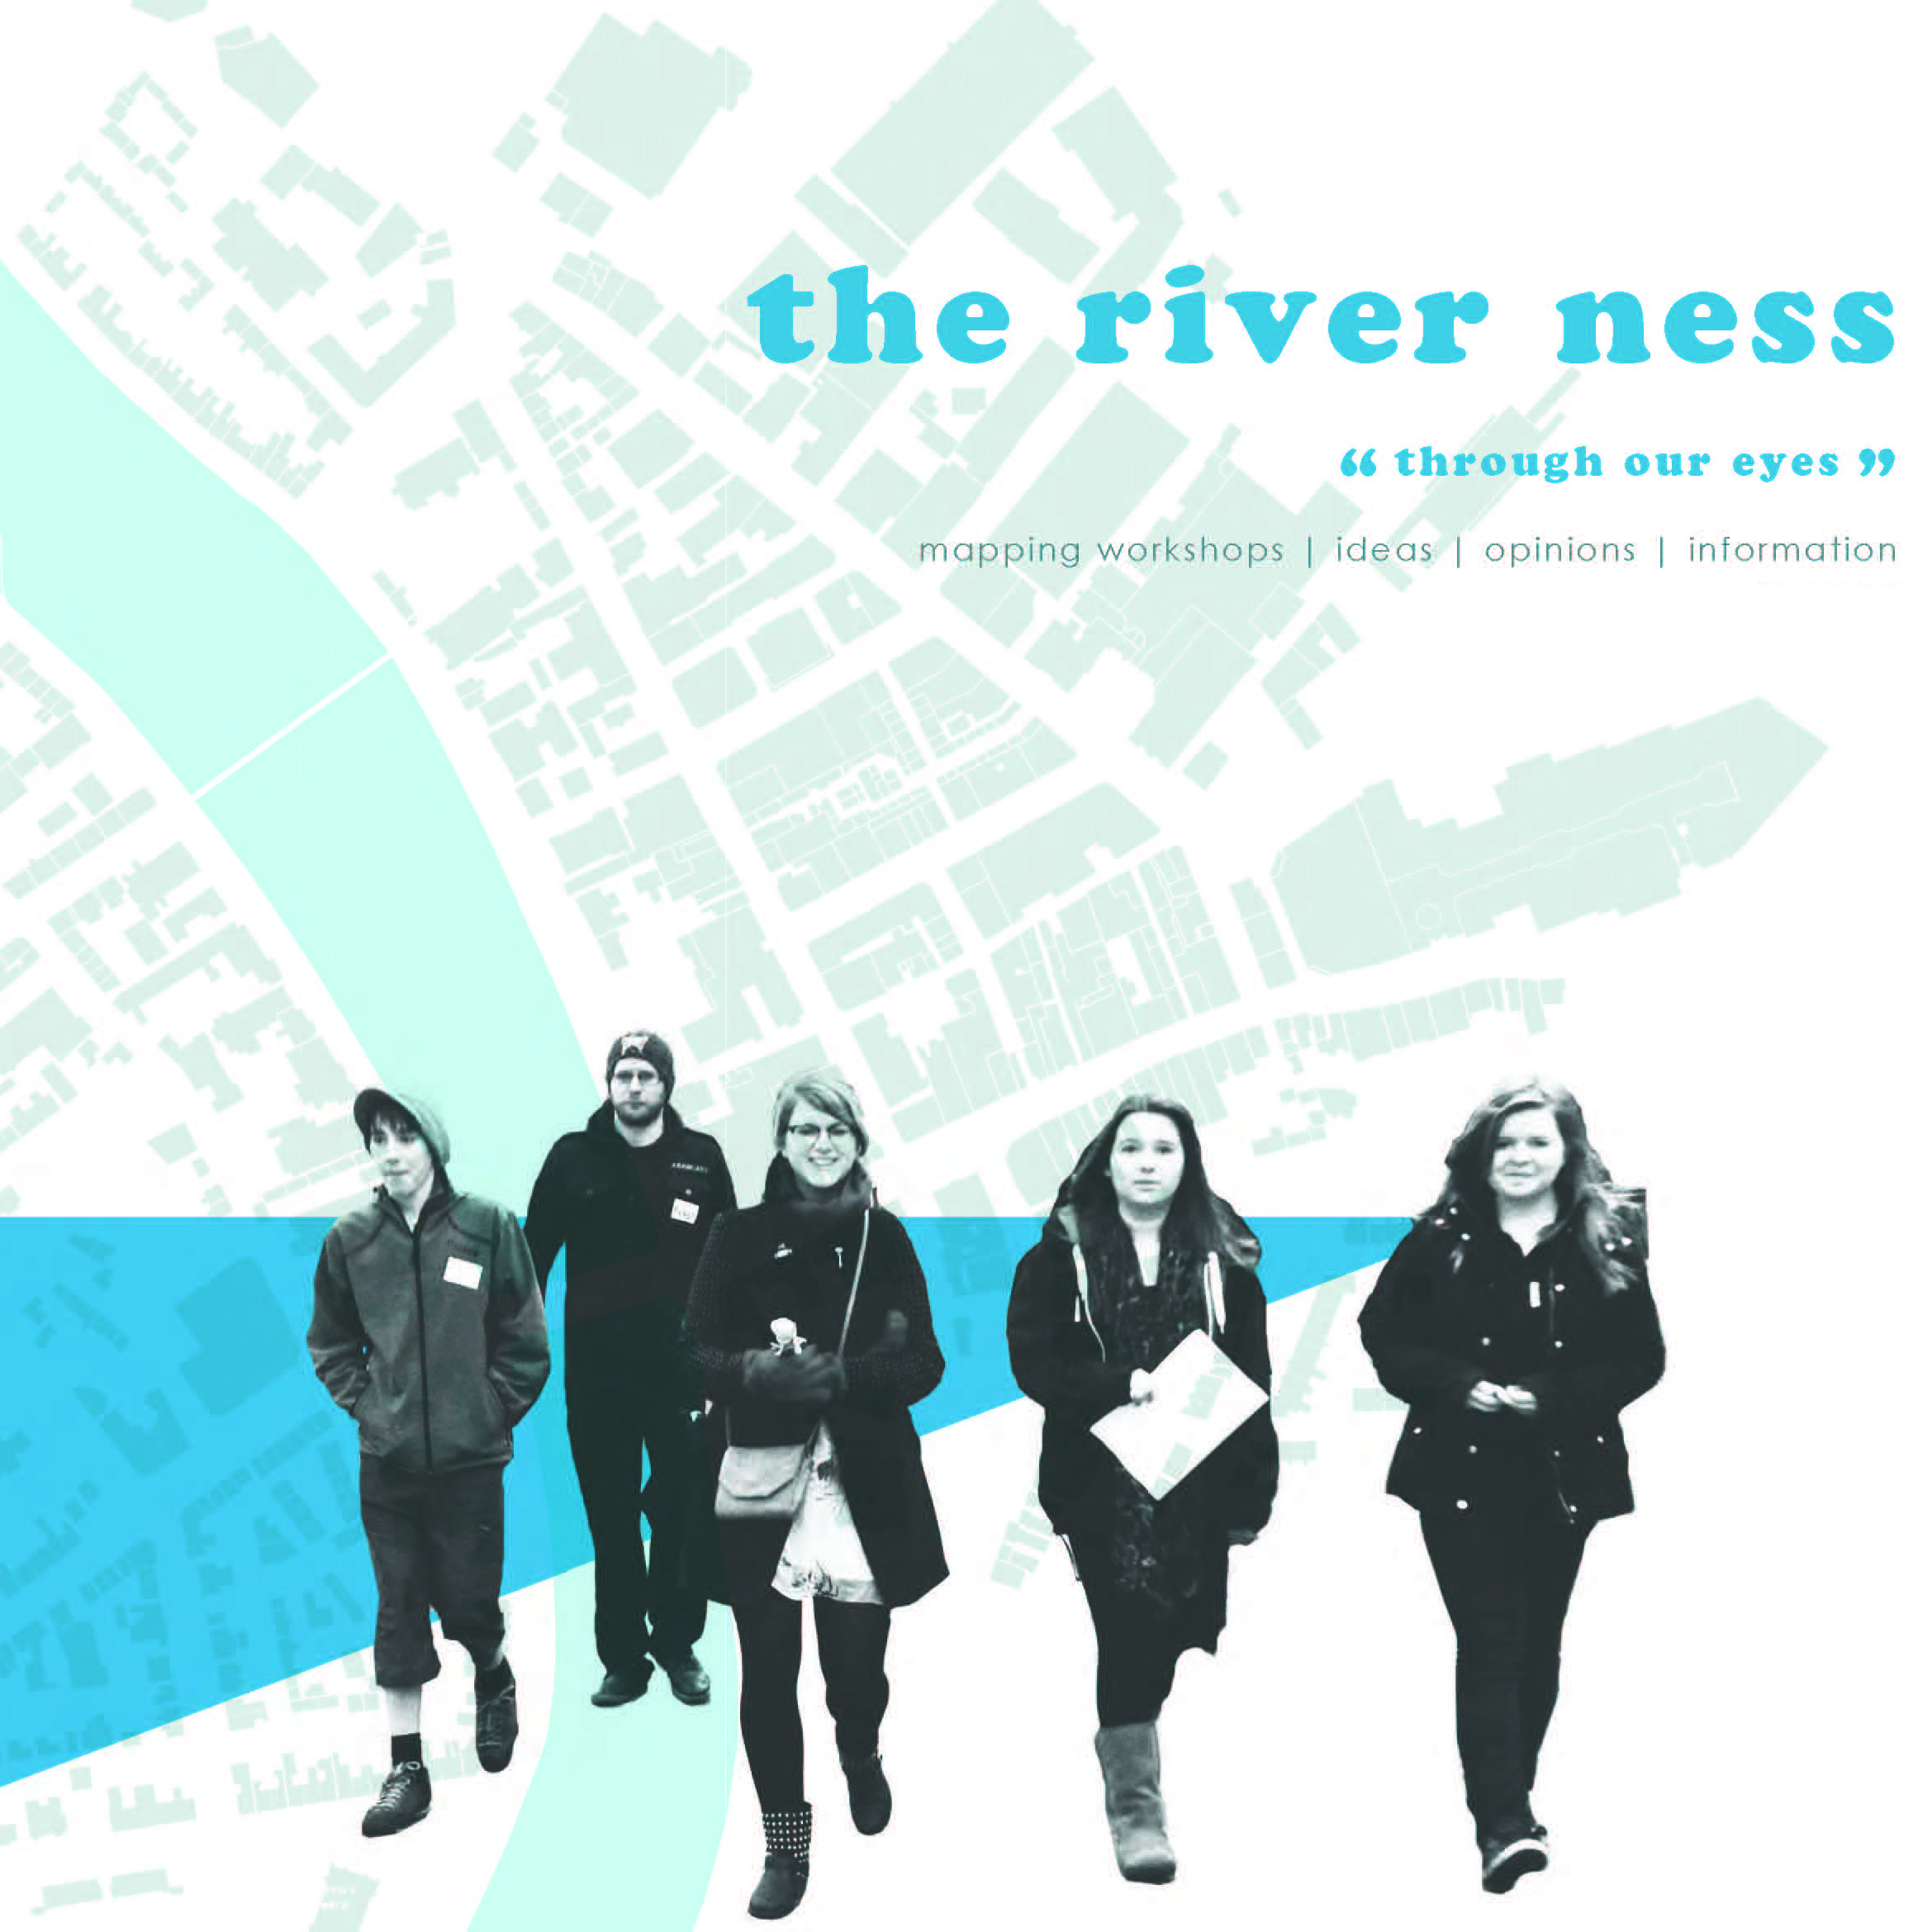 Inverness river mapping workshops  ENGAGE